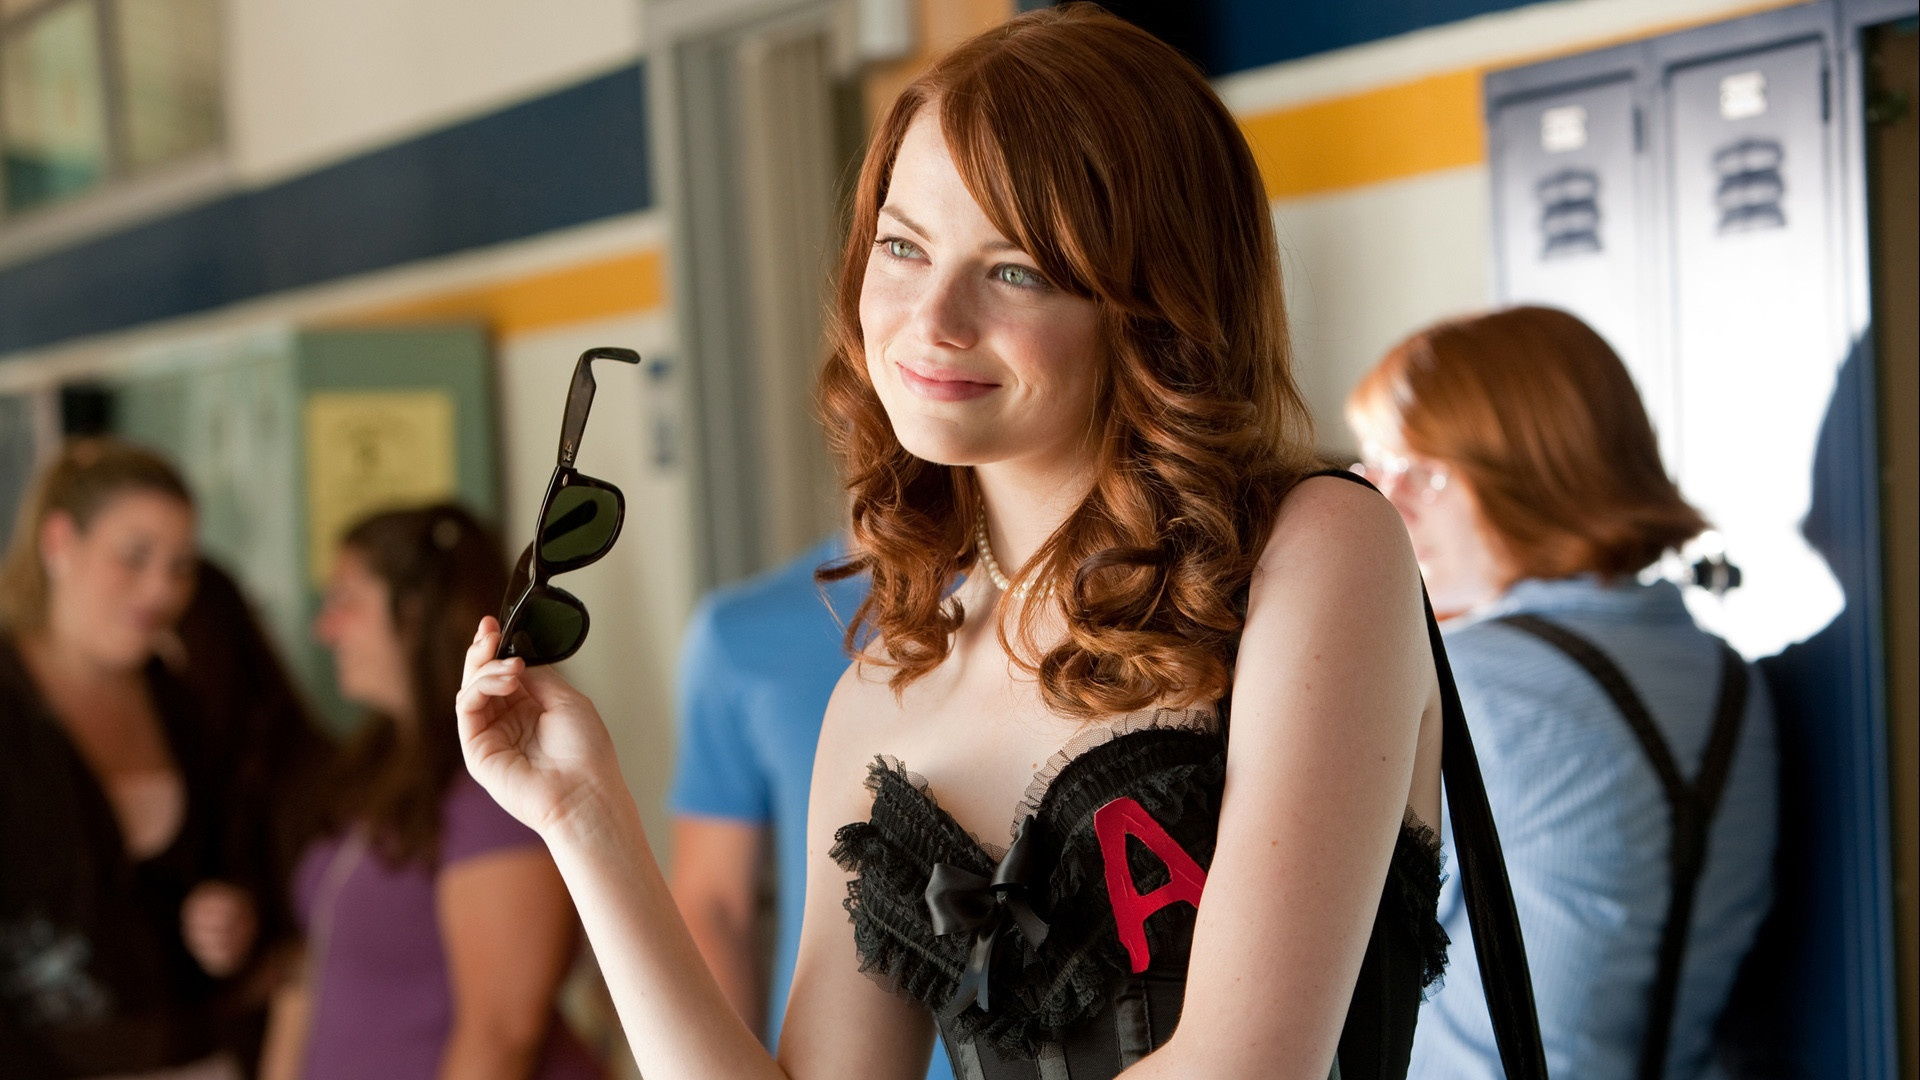 emma stone wallpapers hd a8